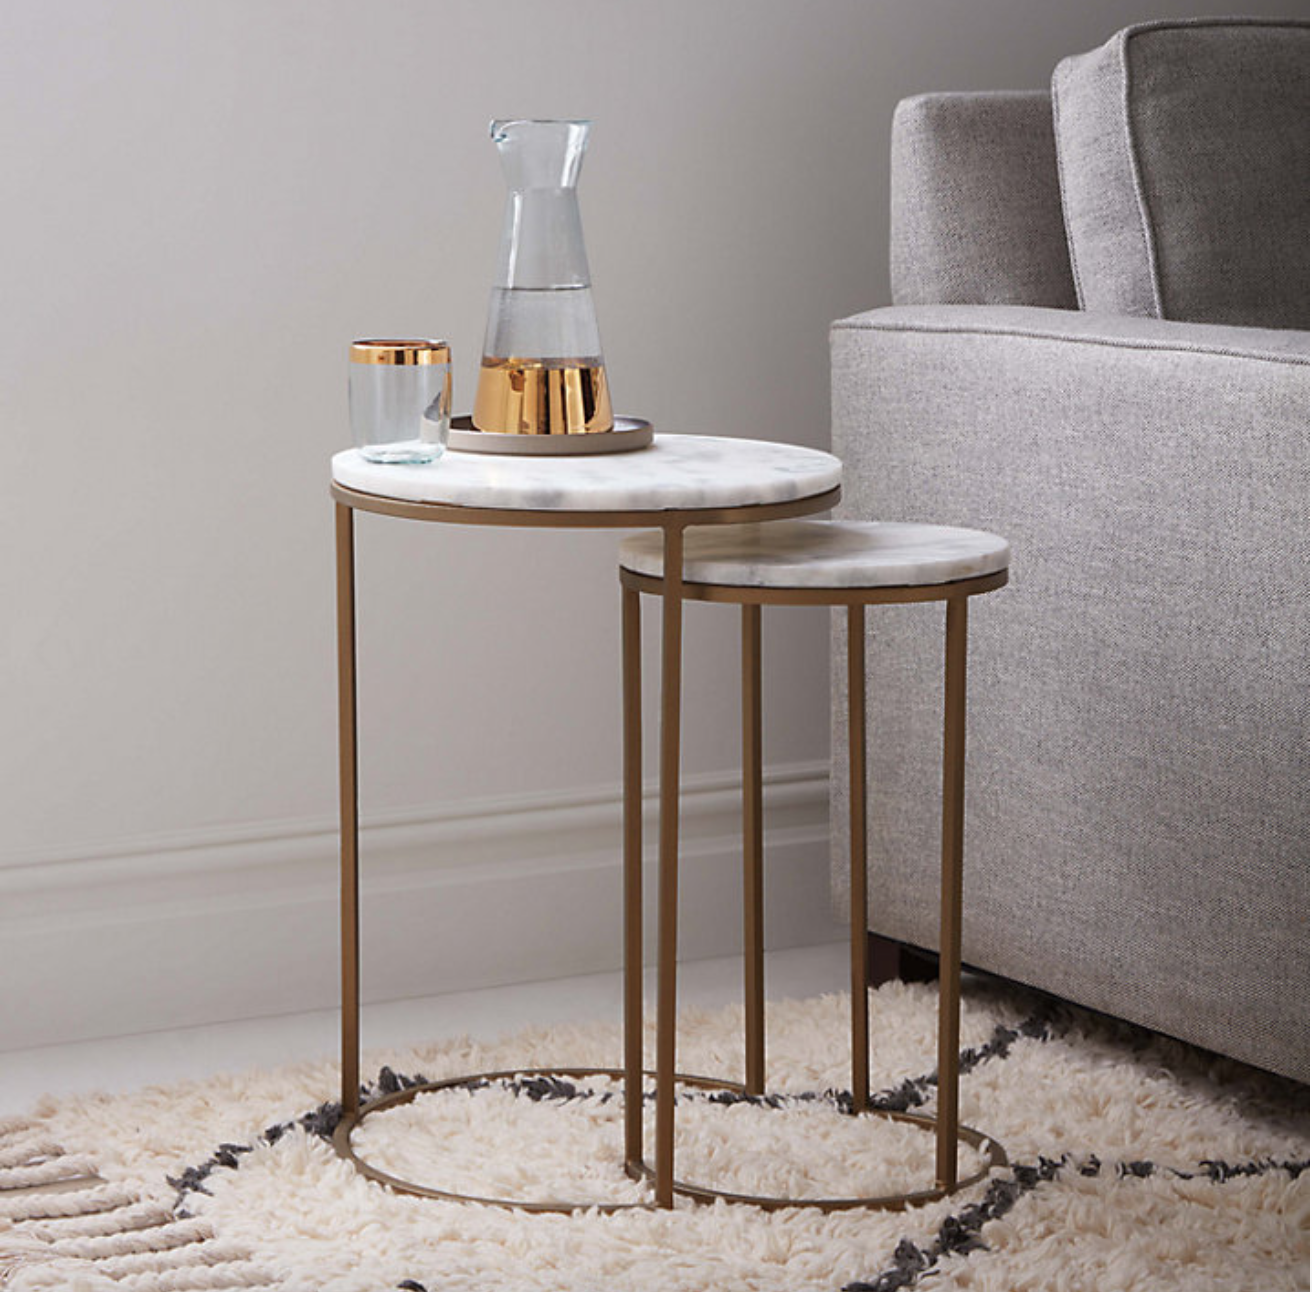 Pair of West Elm marble-topped round nesting tables, with antique brass base, £349 from John Lewis.